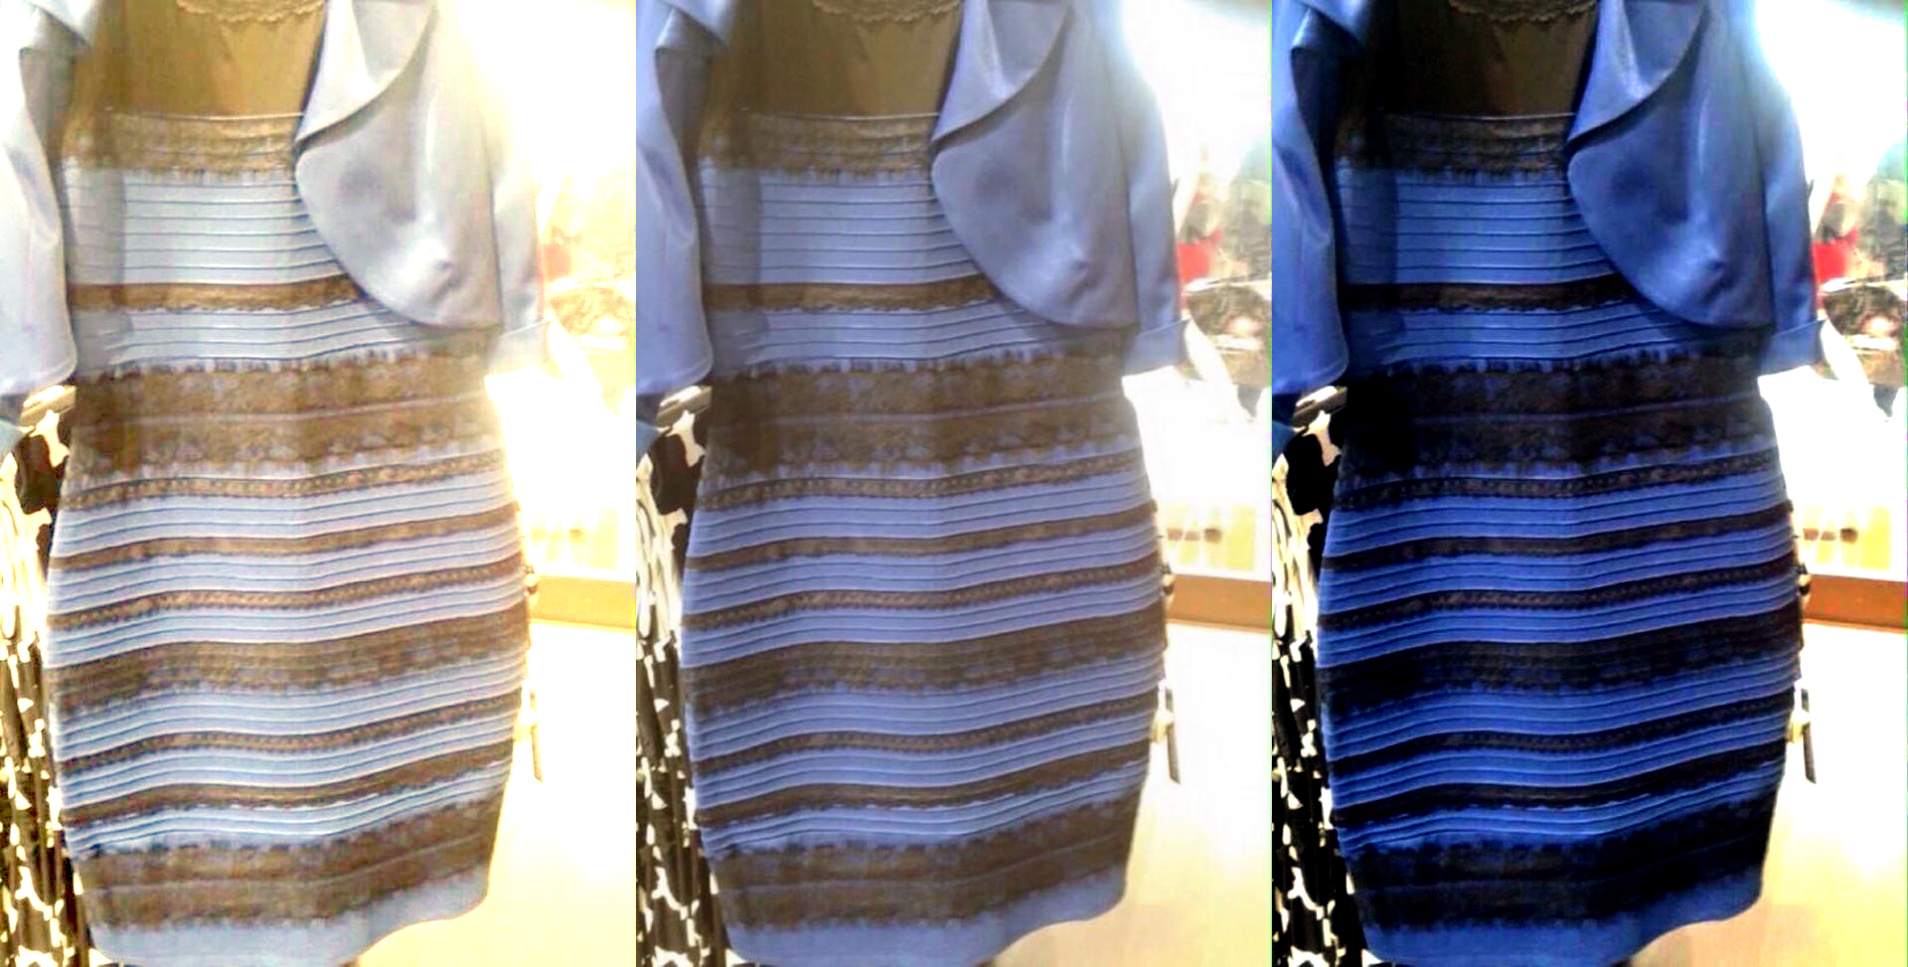 Be Dialectical! The Dress Is Both Black and Blue AND White and Gold